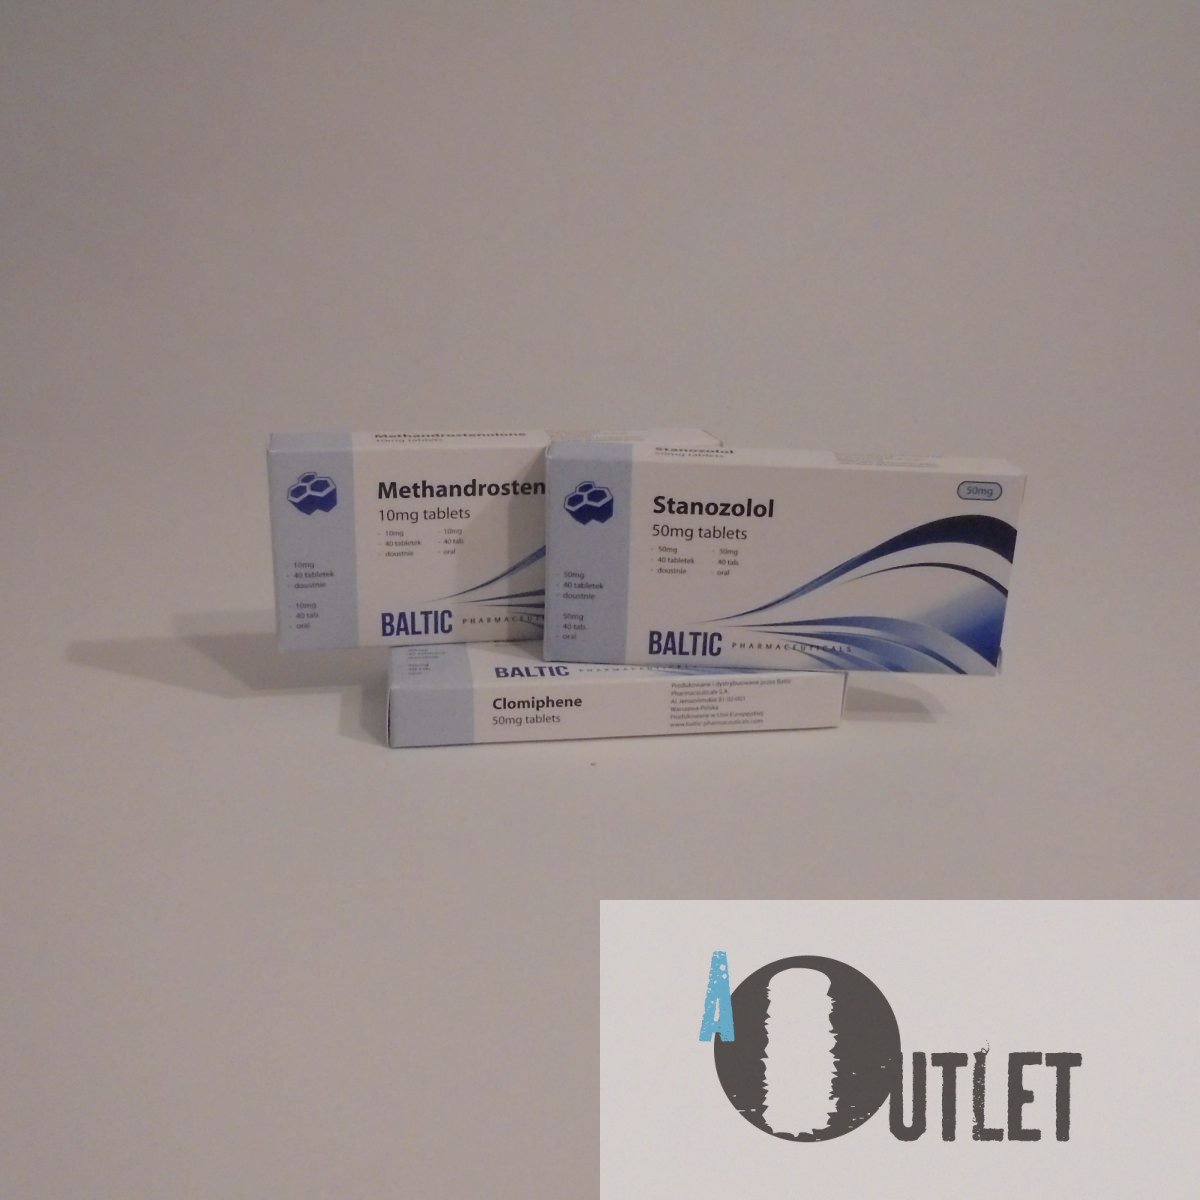 Baltic Pharmaceuticals tablets